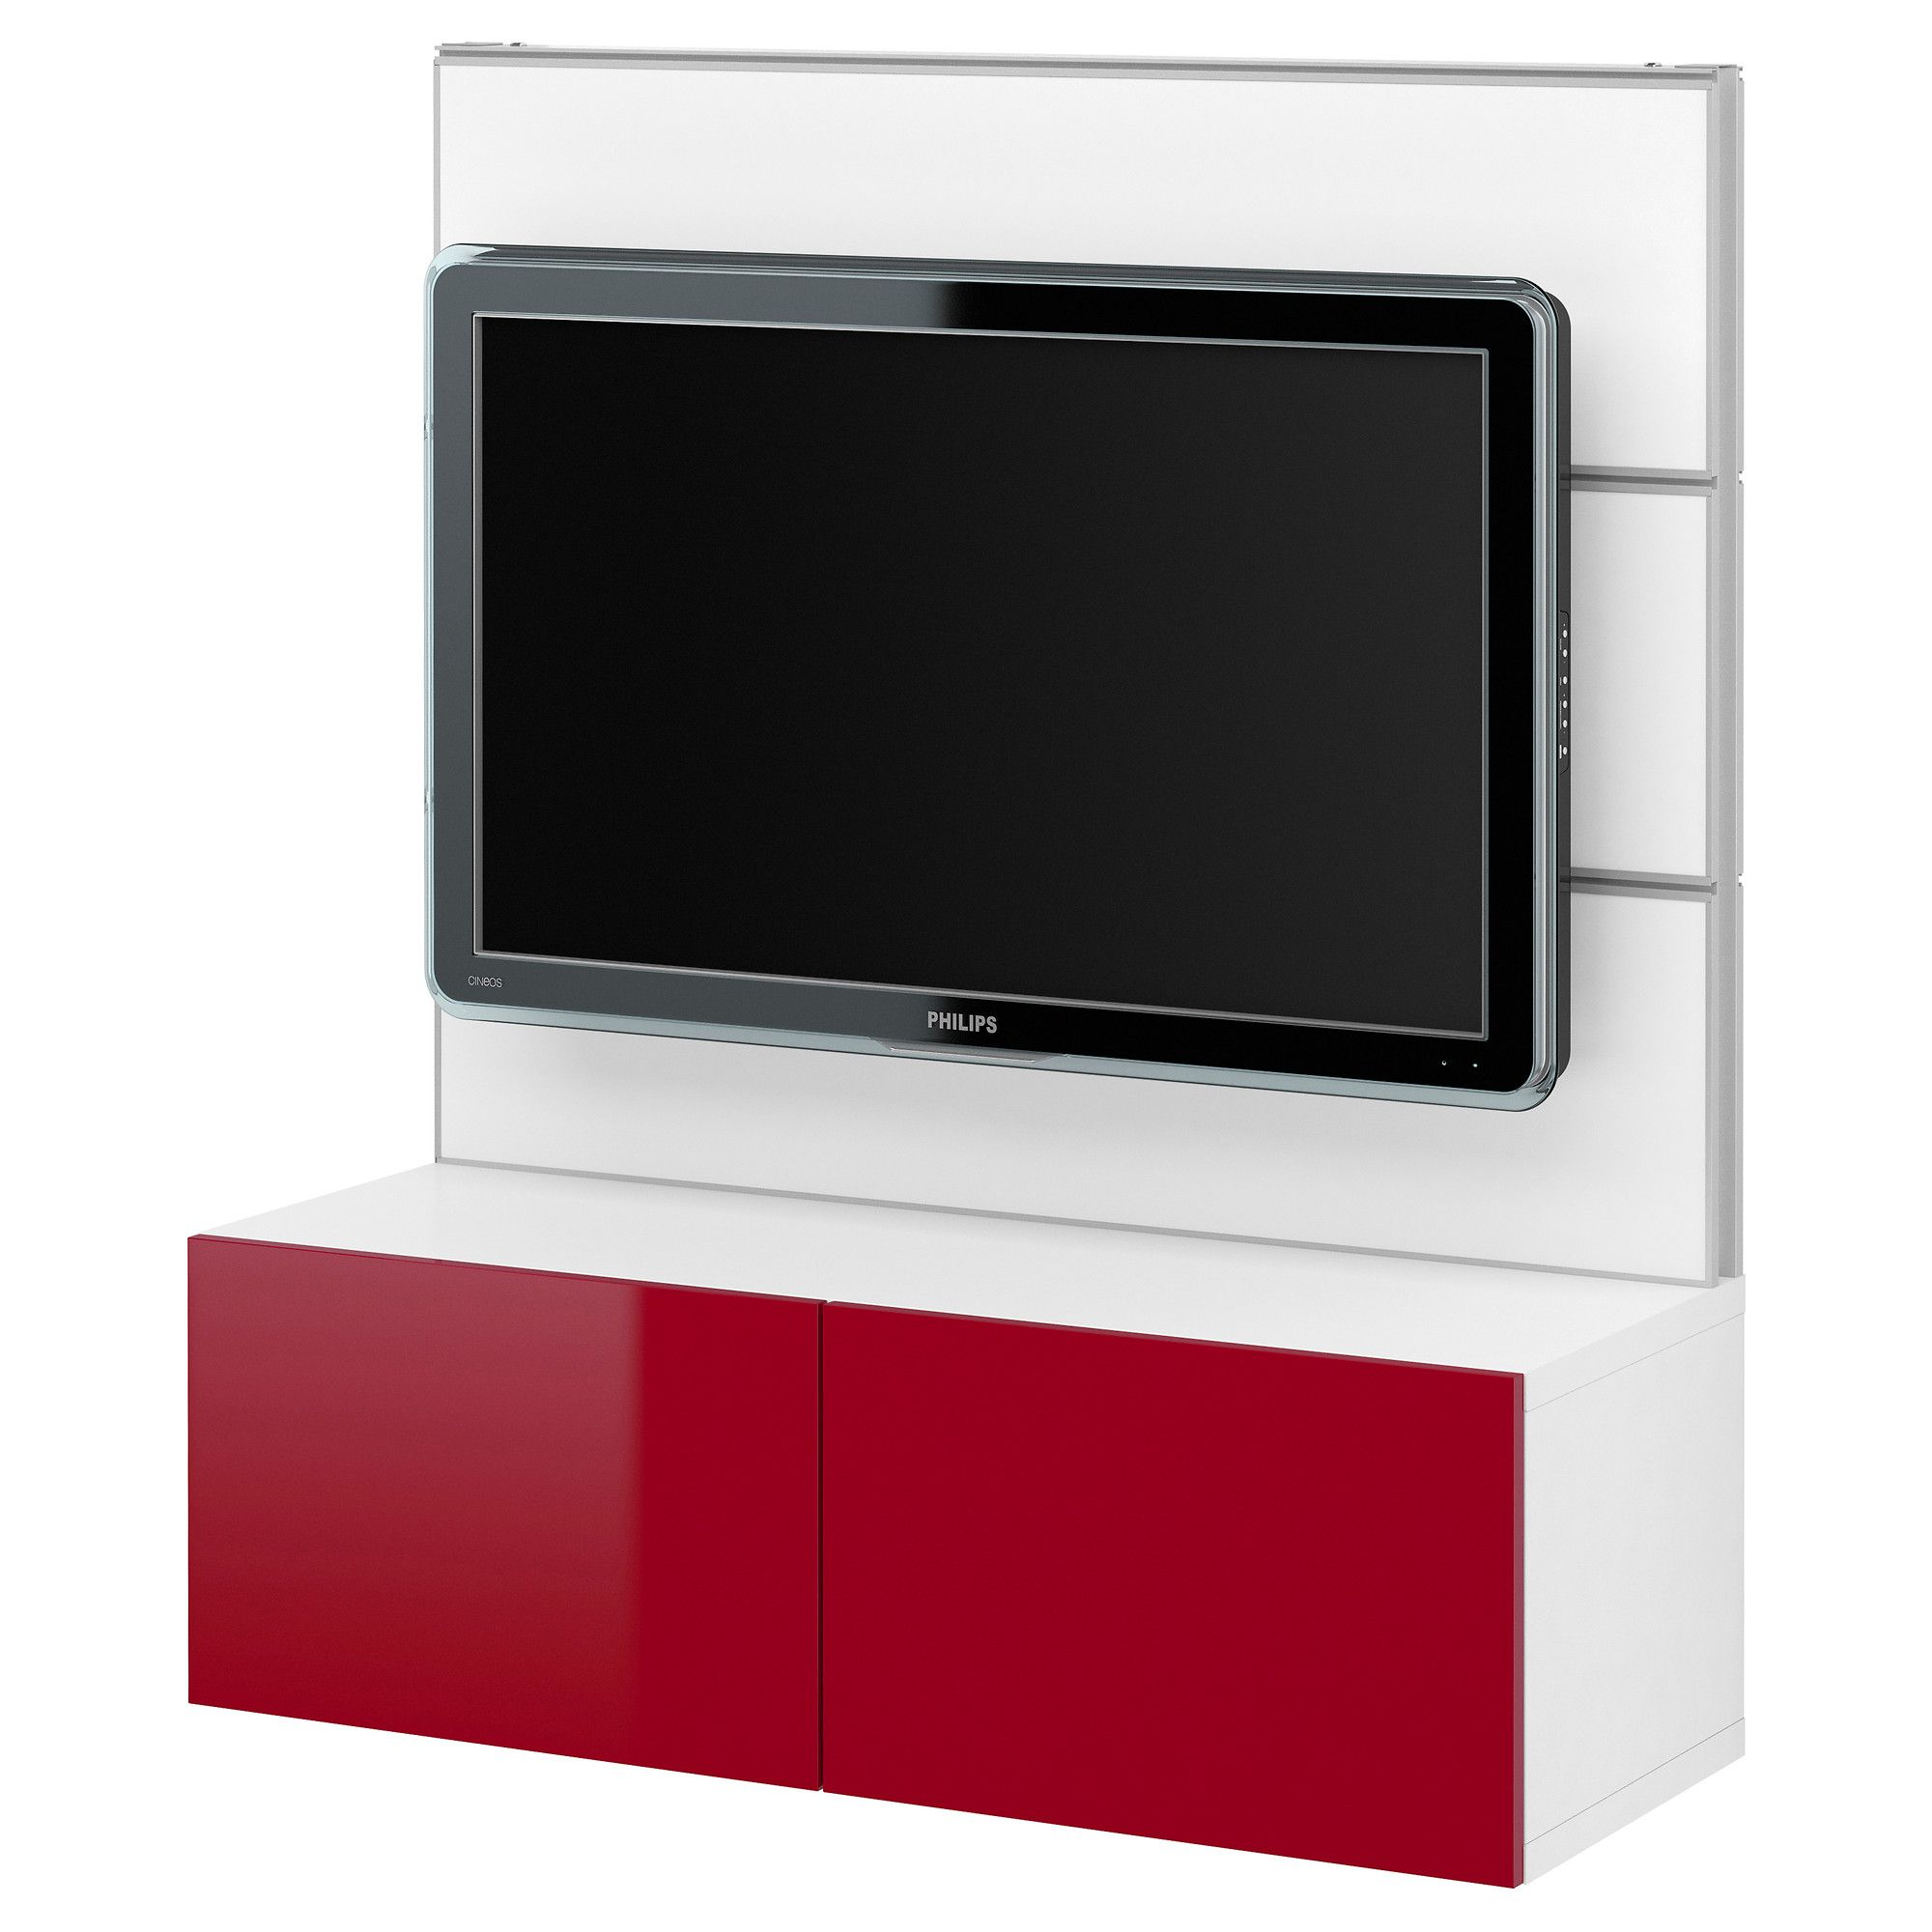 Best Framst Tv Storage Combination White High Gloss Red Ikea  # Meuble Tv Noir Led